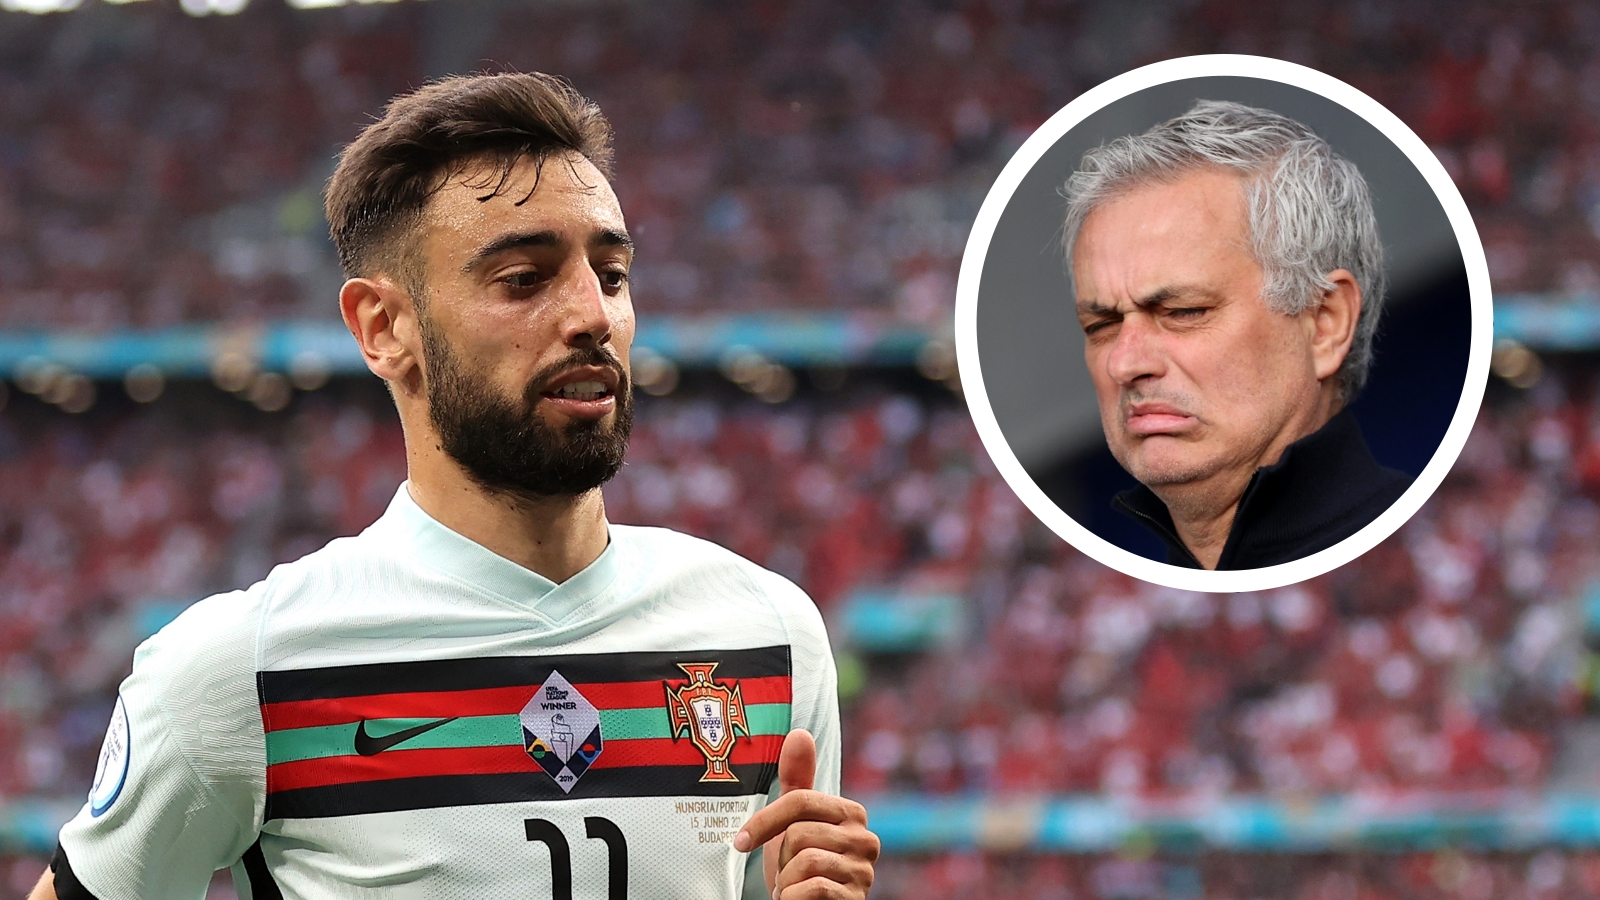 Fernandes has ghosted for Portugal at Euro 2020 - Mourinho